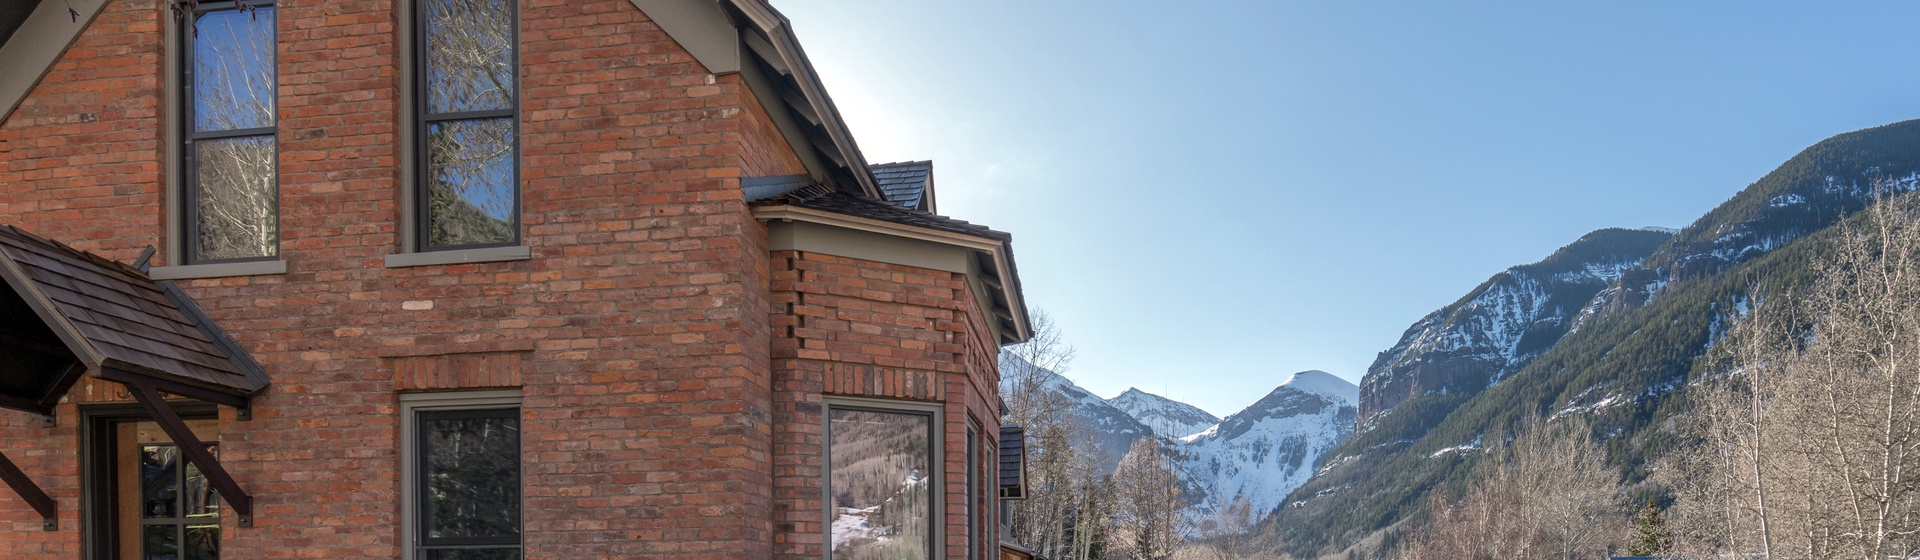 1.3-Telluride-The-Masonry-Exterior-East-View.jpg